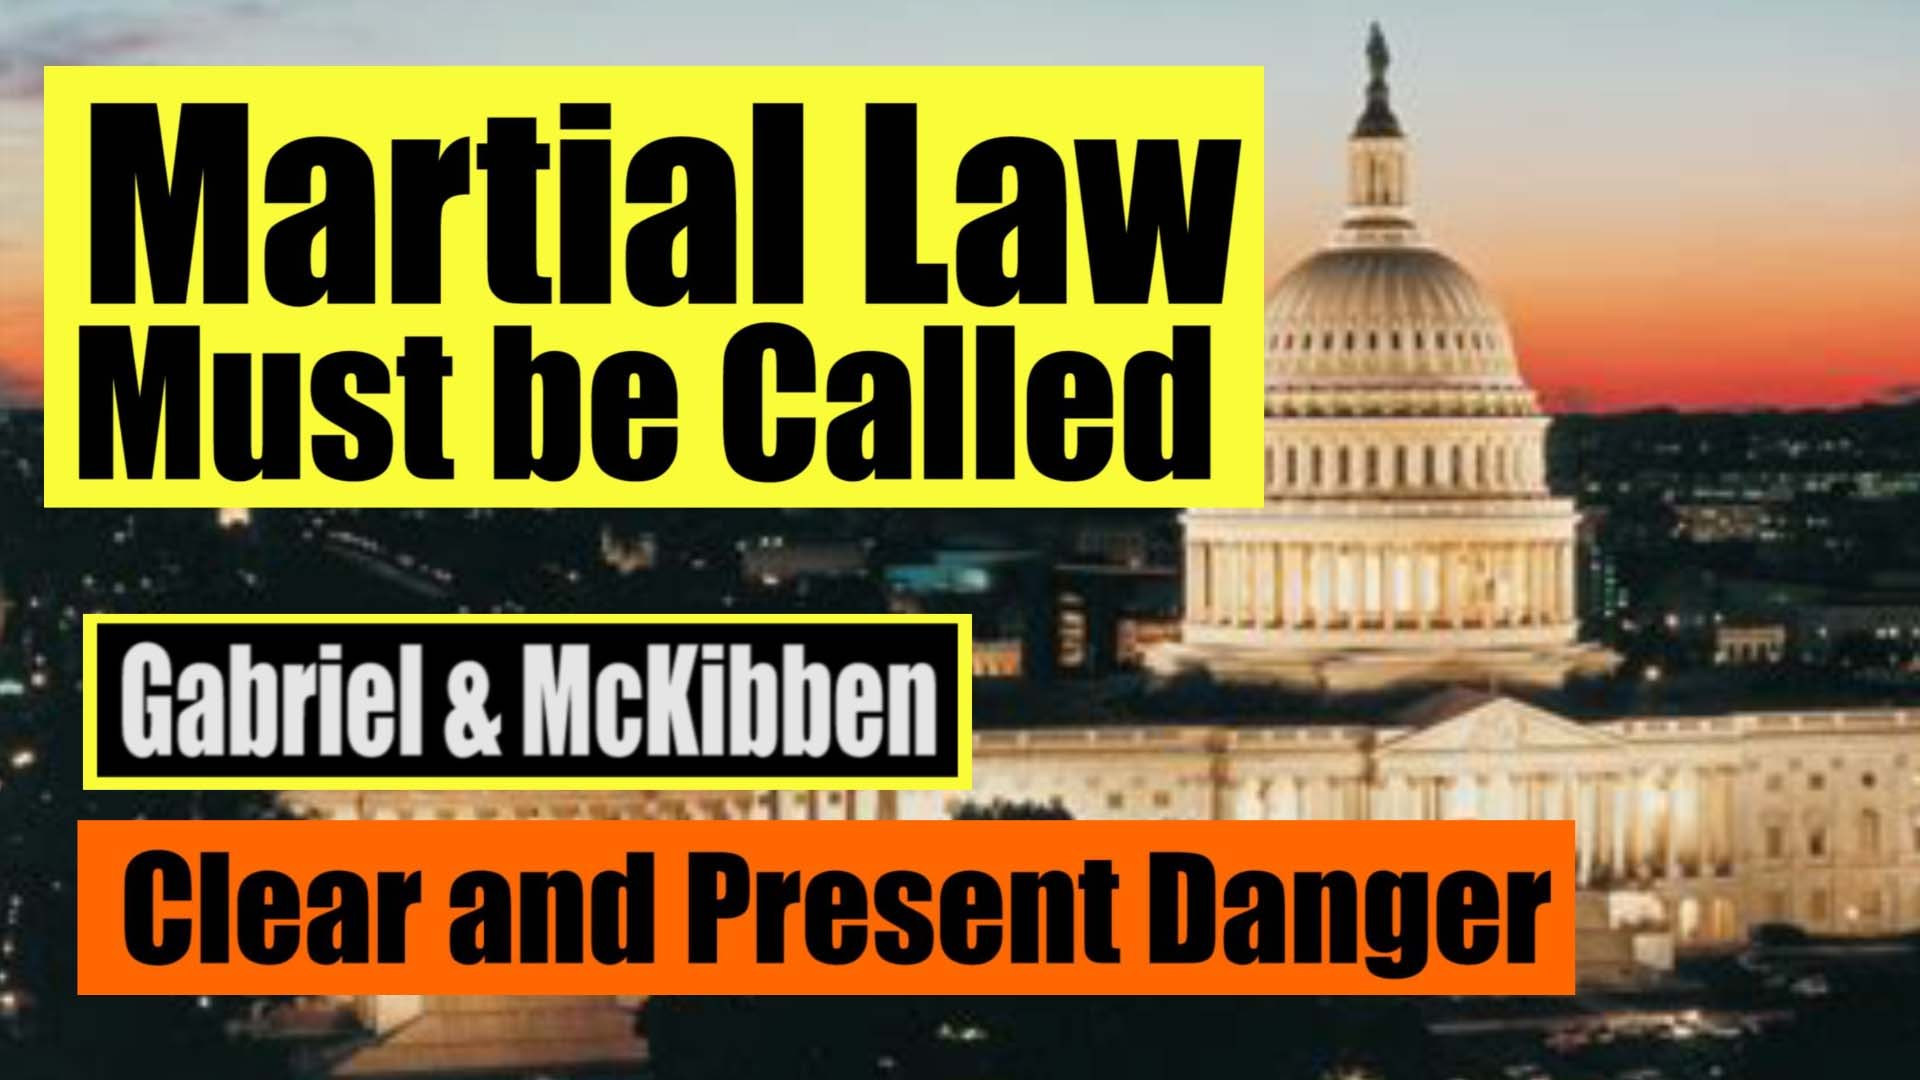 Gabriels, McKibben. (Sep. 11, 2020). Martial Law Must be Called. American Intelligence Media, Americans for Innovation.